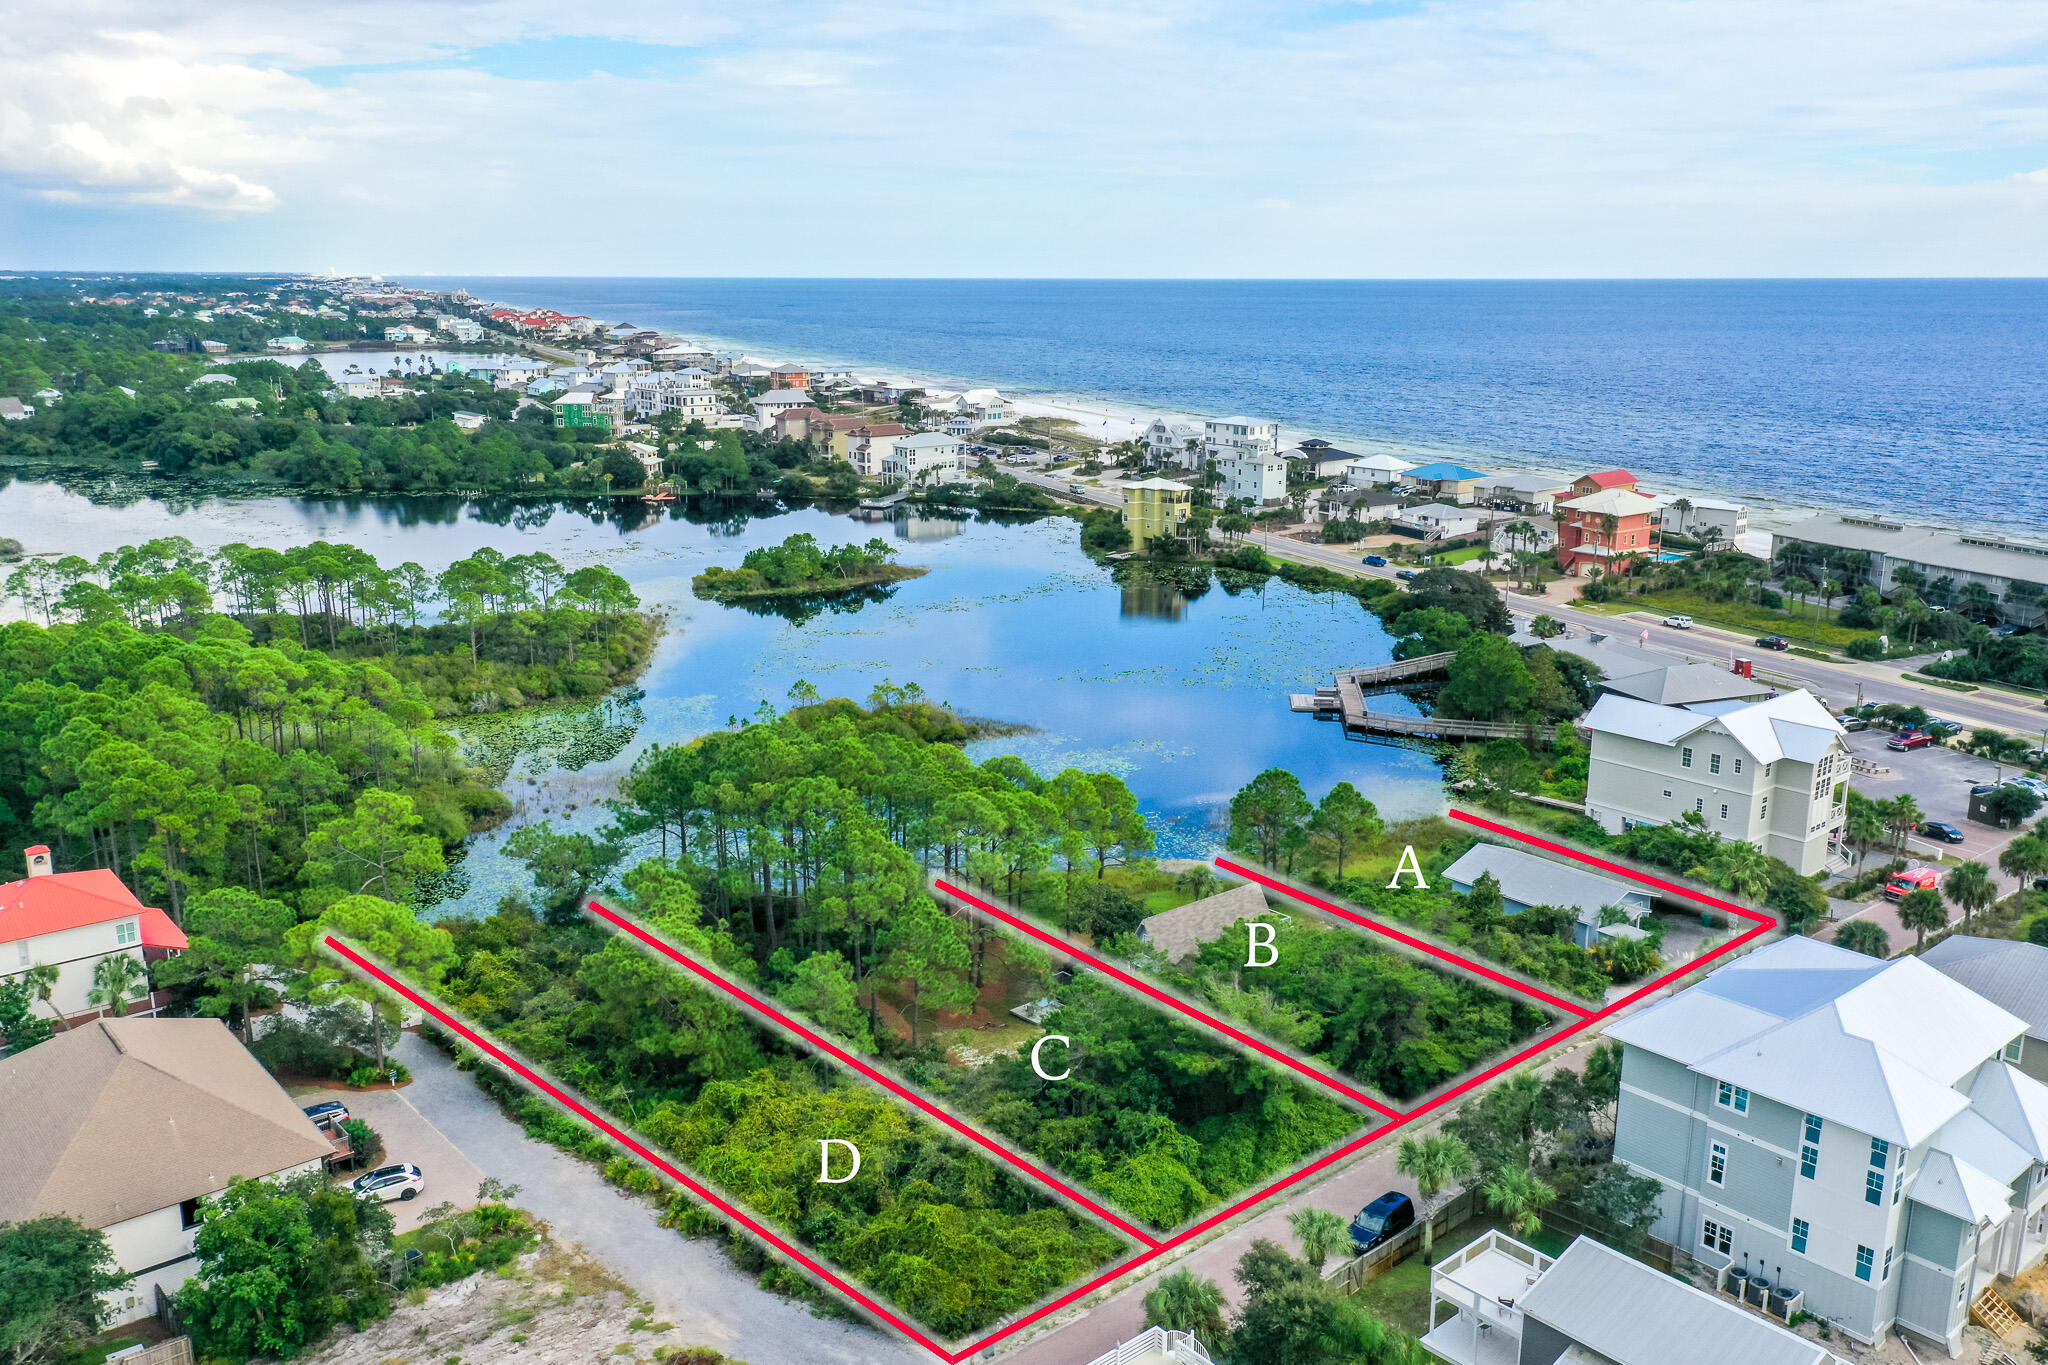 Fantastic development opportunity. 66 N Woodward has been replatted and is now home to FOUR LOTS. Located on Allen Lake and zoned Neighborhood Infill, this four lot development has endless development opportunities! Positioned 300ft from 30A's NEW Dune Allen Regional beach access and just 3 lots back from Stinkys Fish Camp, 30a's lakeside dinning and entertainment hot spot! Exceptional area for building vacation rentals or second homes.  The property currently has two homes that provide exceptional rental income.Buyer to verify all information and dimensions. Information is deemed reliable but not guaranteed. Information deemed reliable but not guaranteed, buyer to verify all dimensions.